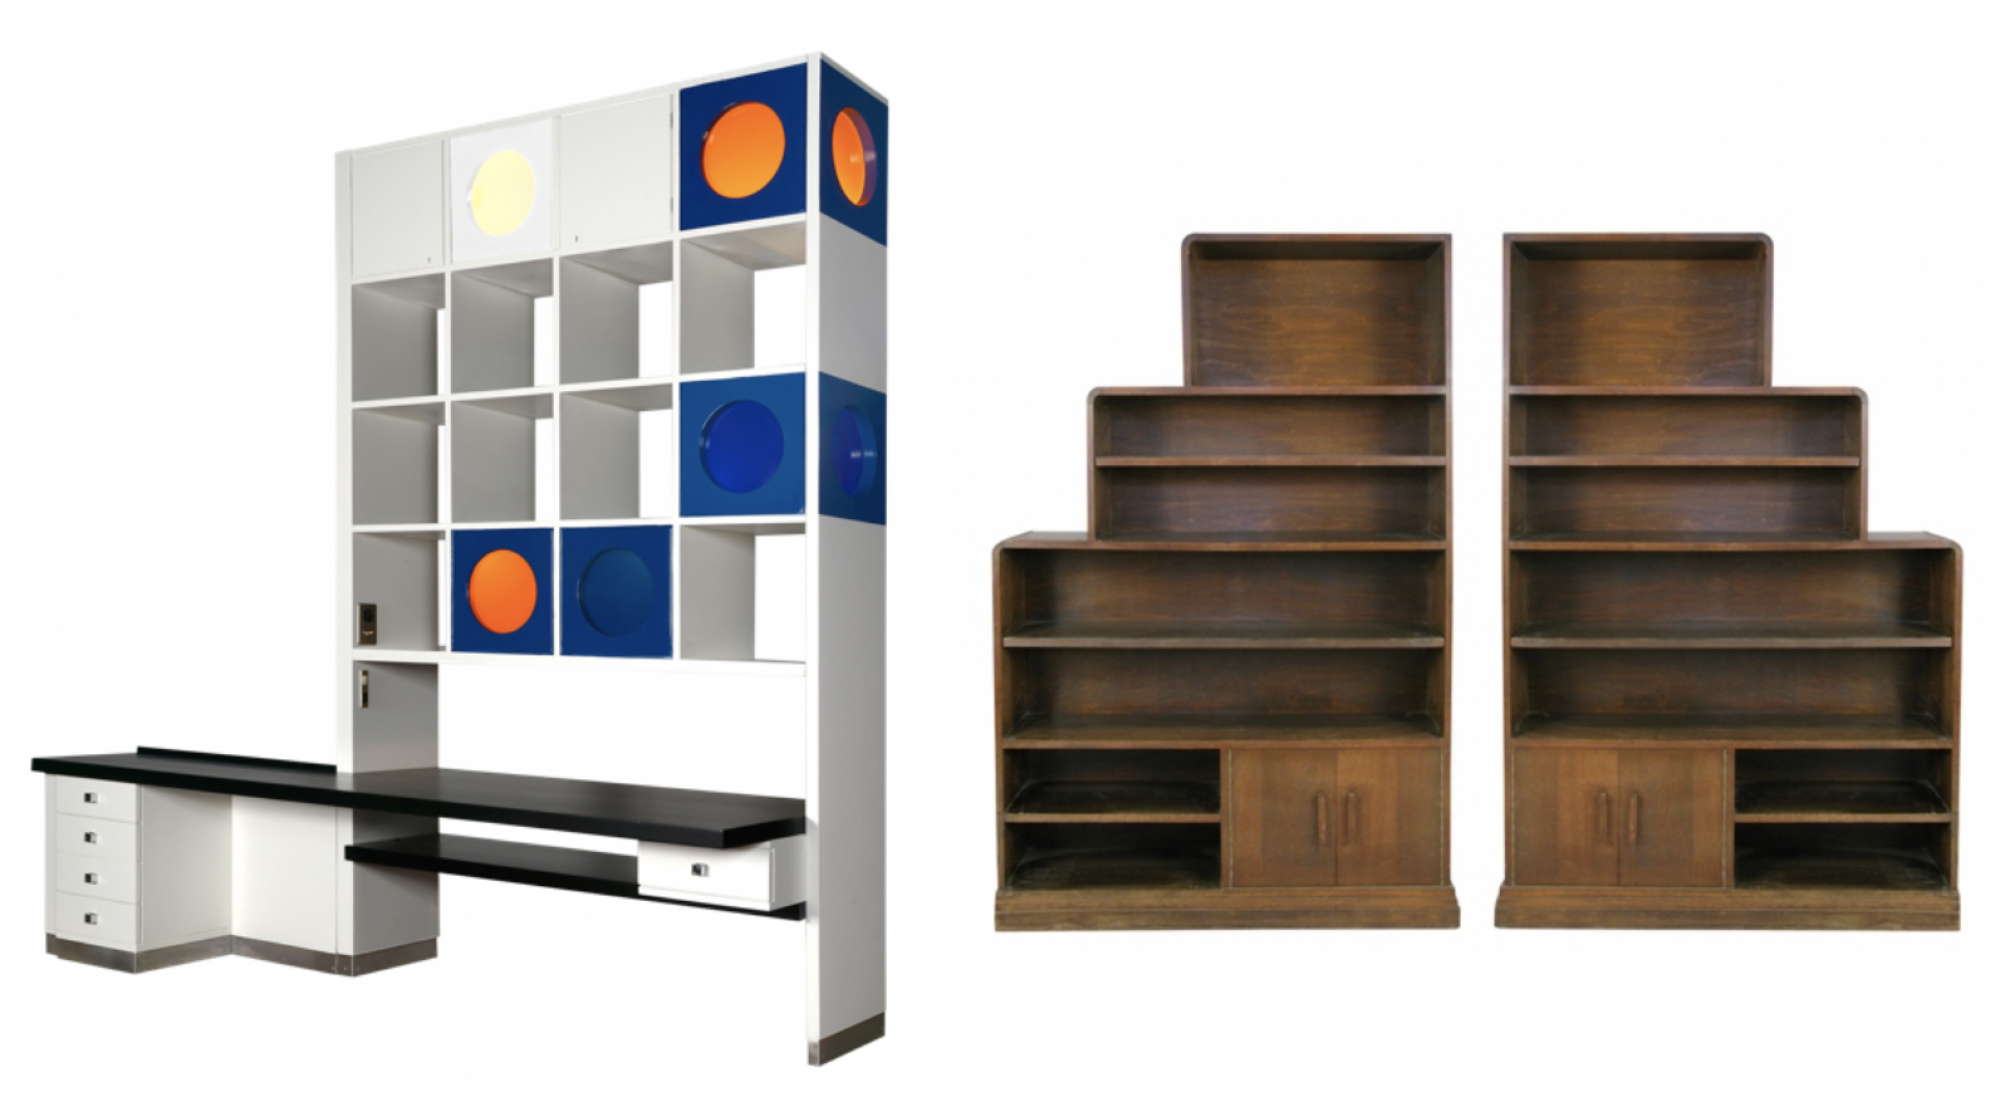 Ico Parisi room divider and 1940s walnut skyscraper bookcases at DECASO (Images: DECASO)